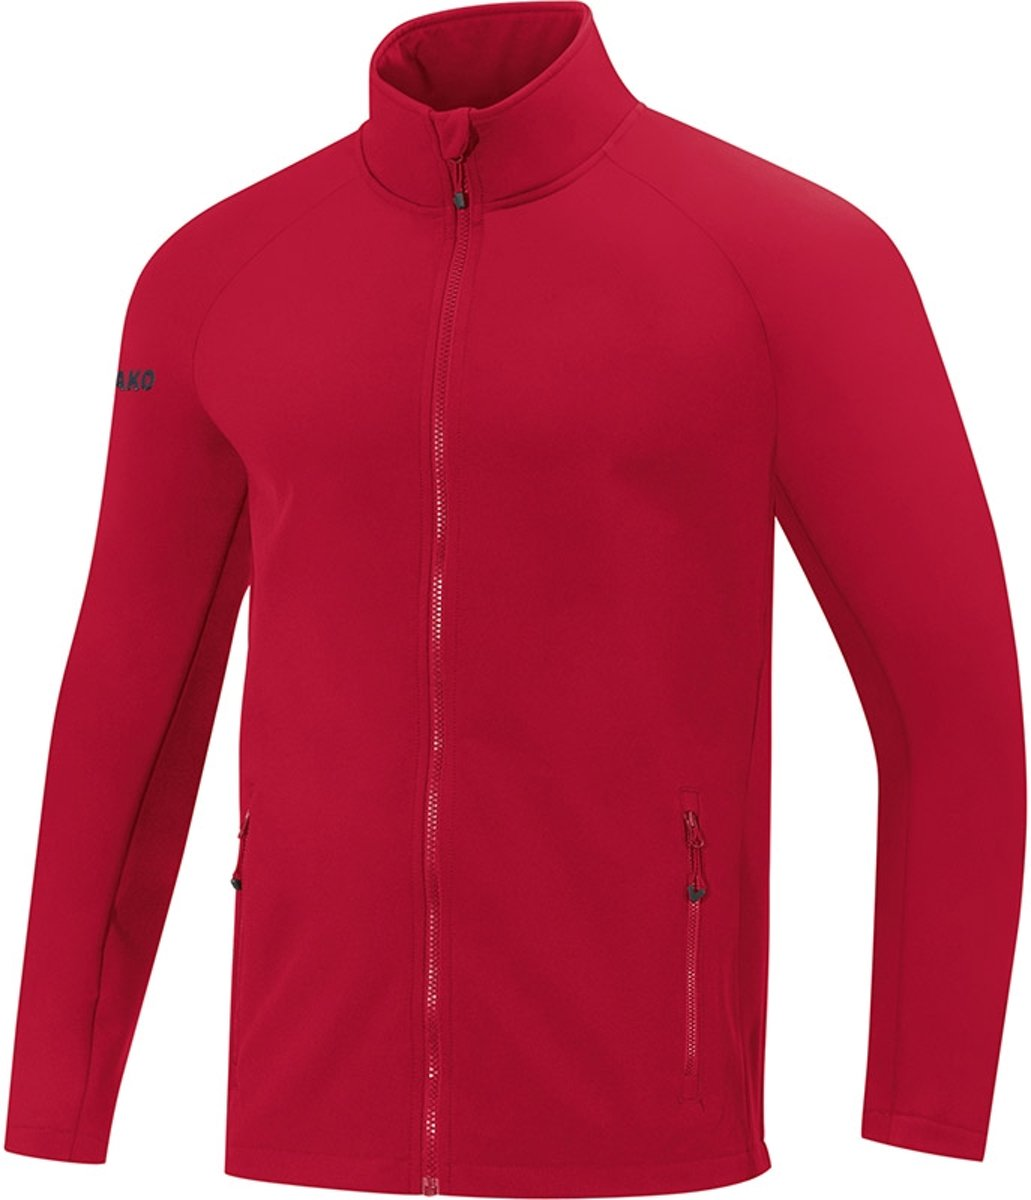 Jako Team Dames Softshell Jas - Softshelljassen  - rood - 44